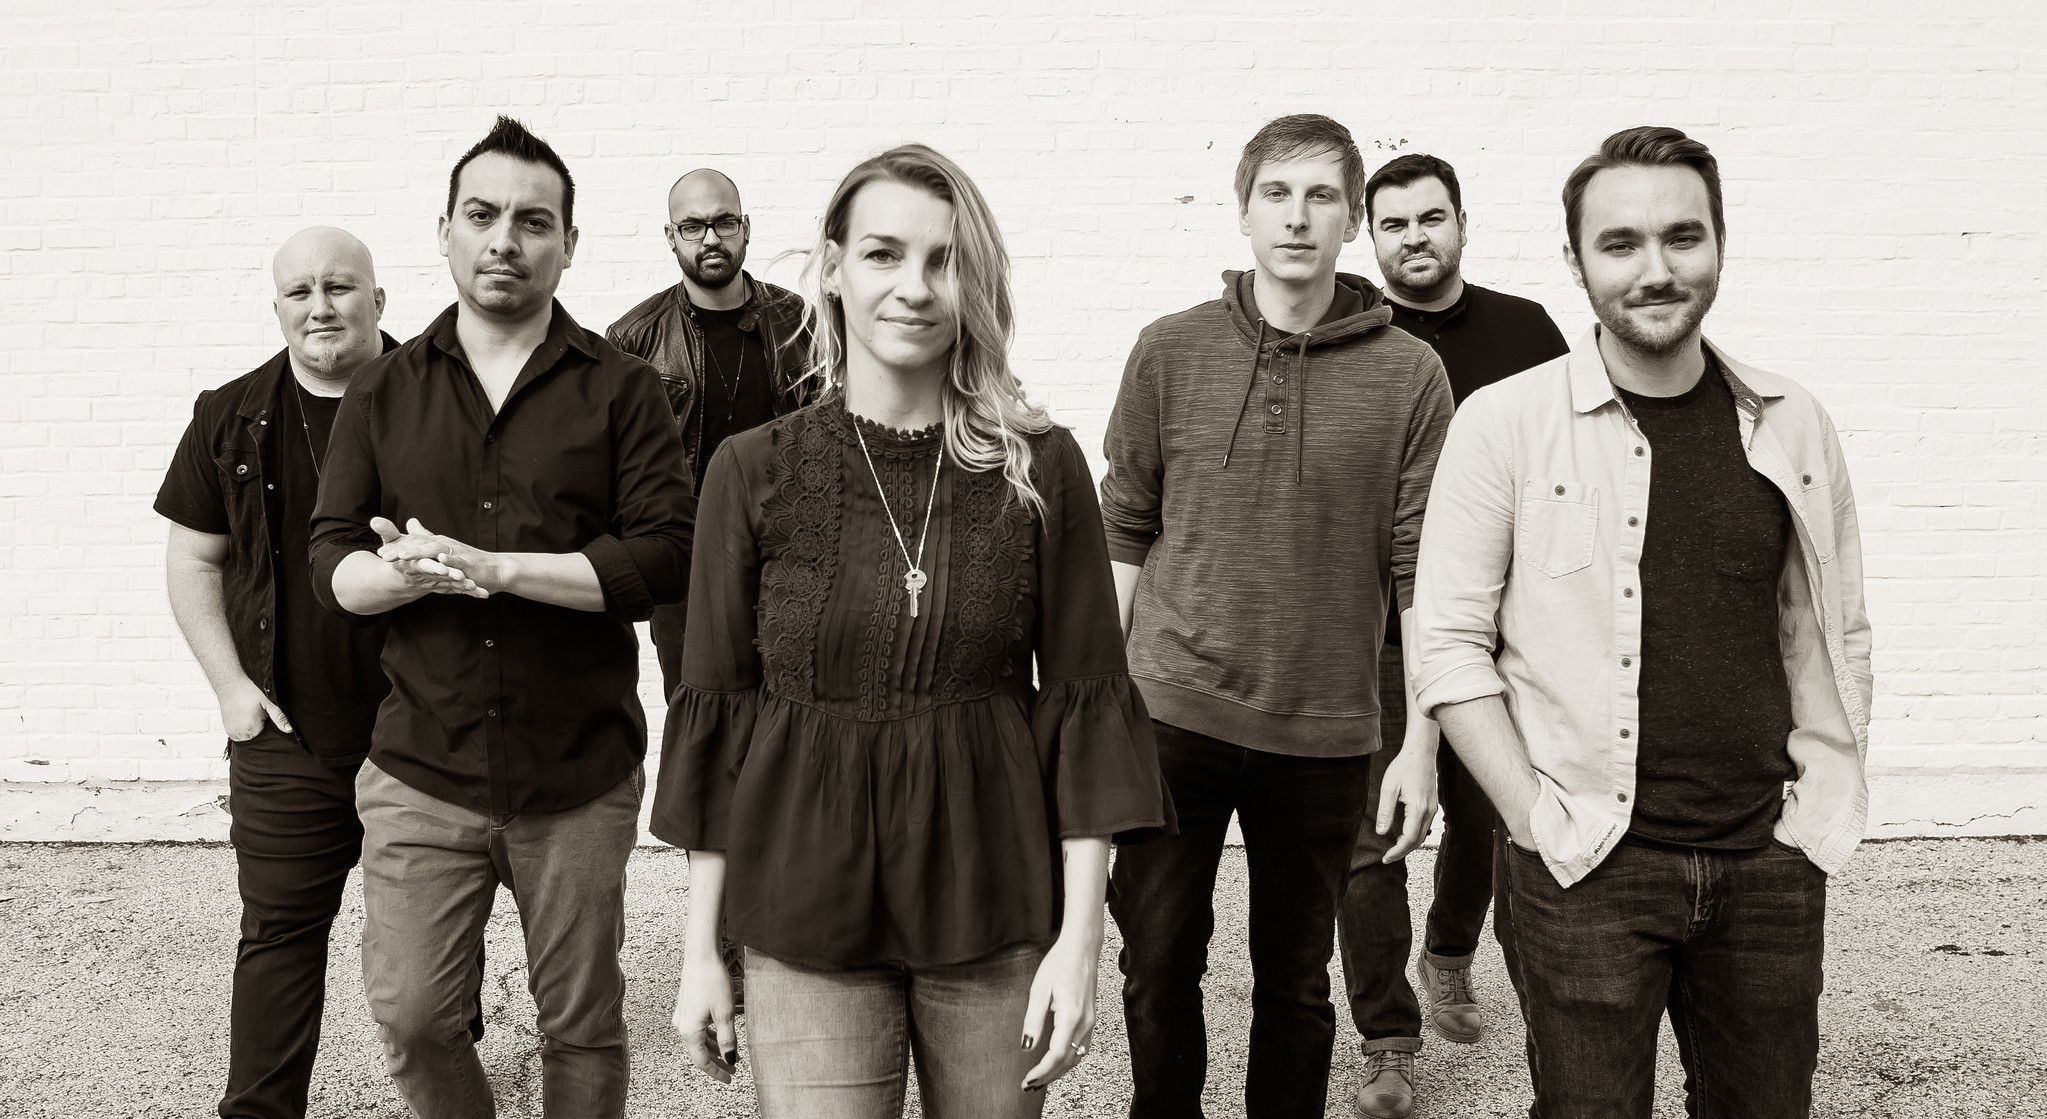 COMMUNITY MUSIC'S 'NOTHING HE CAN'T DO' POWERFULLY PROCLAIMS GOD'S SUFFICIENCY